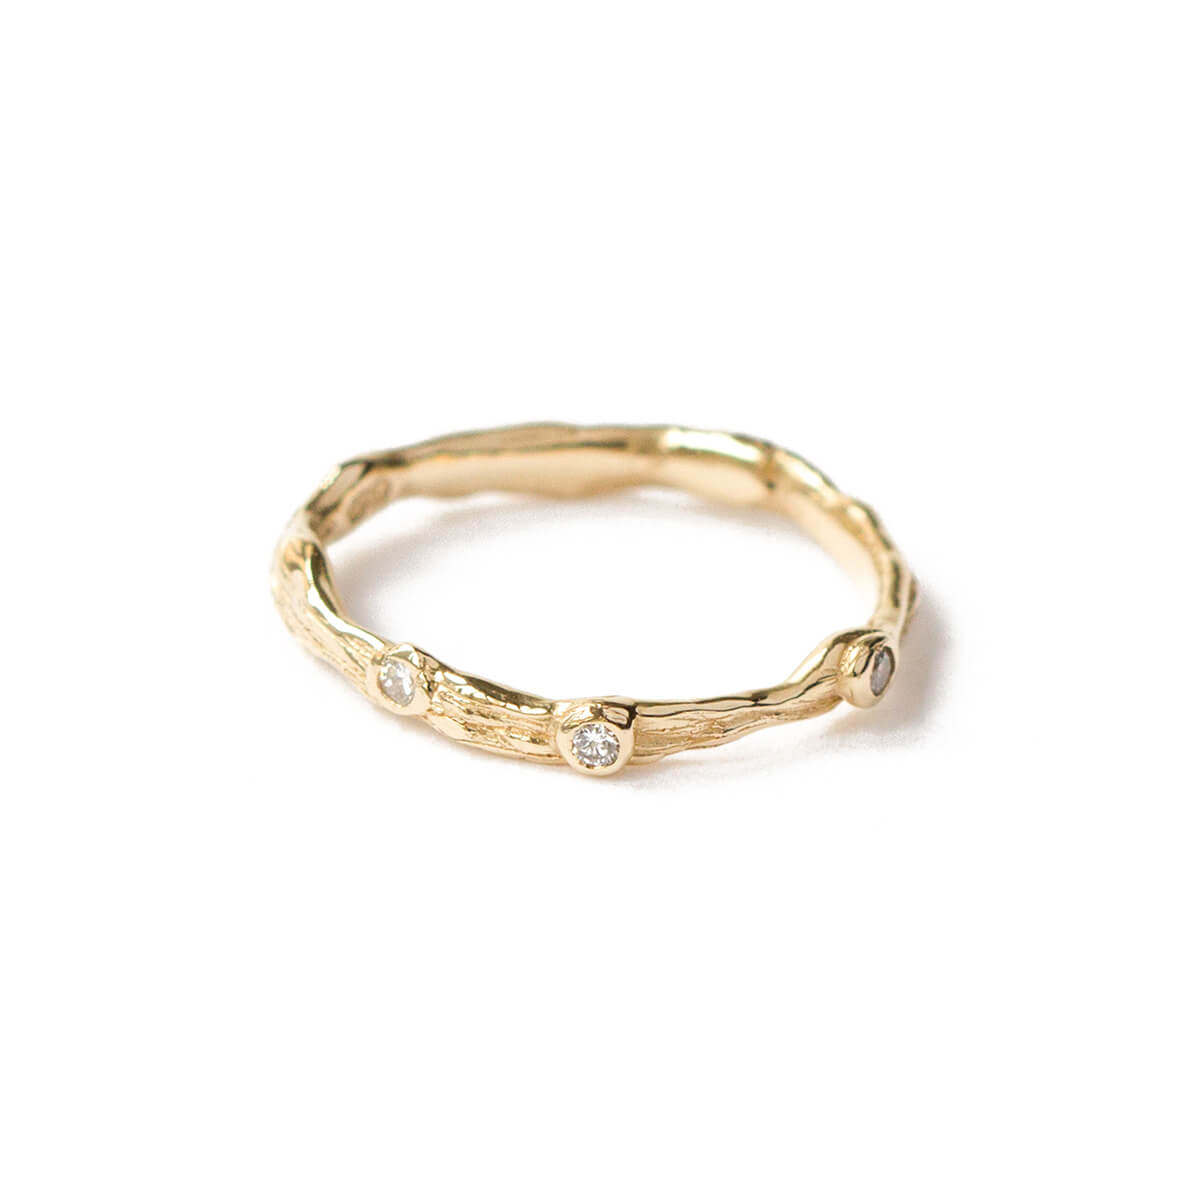 9kt Yellow Gold Twig Ring With White Diamonds